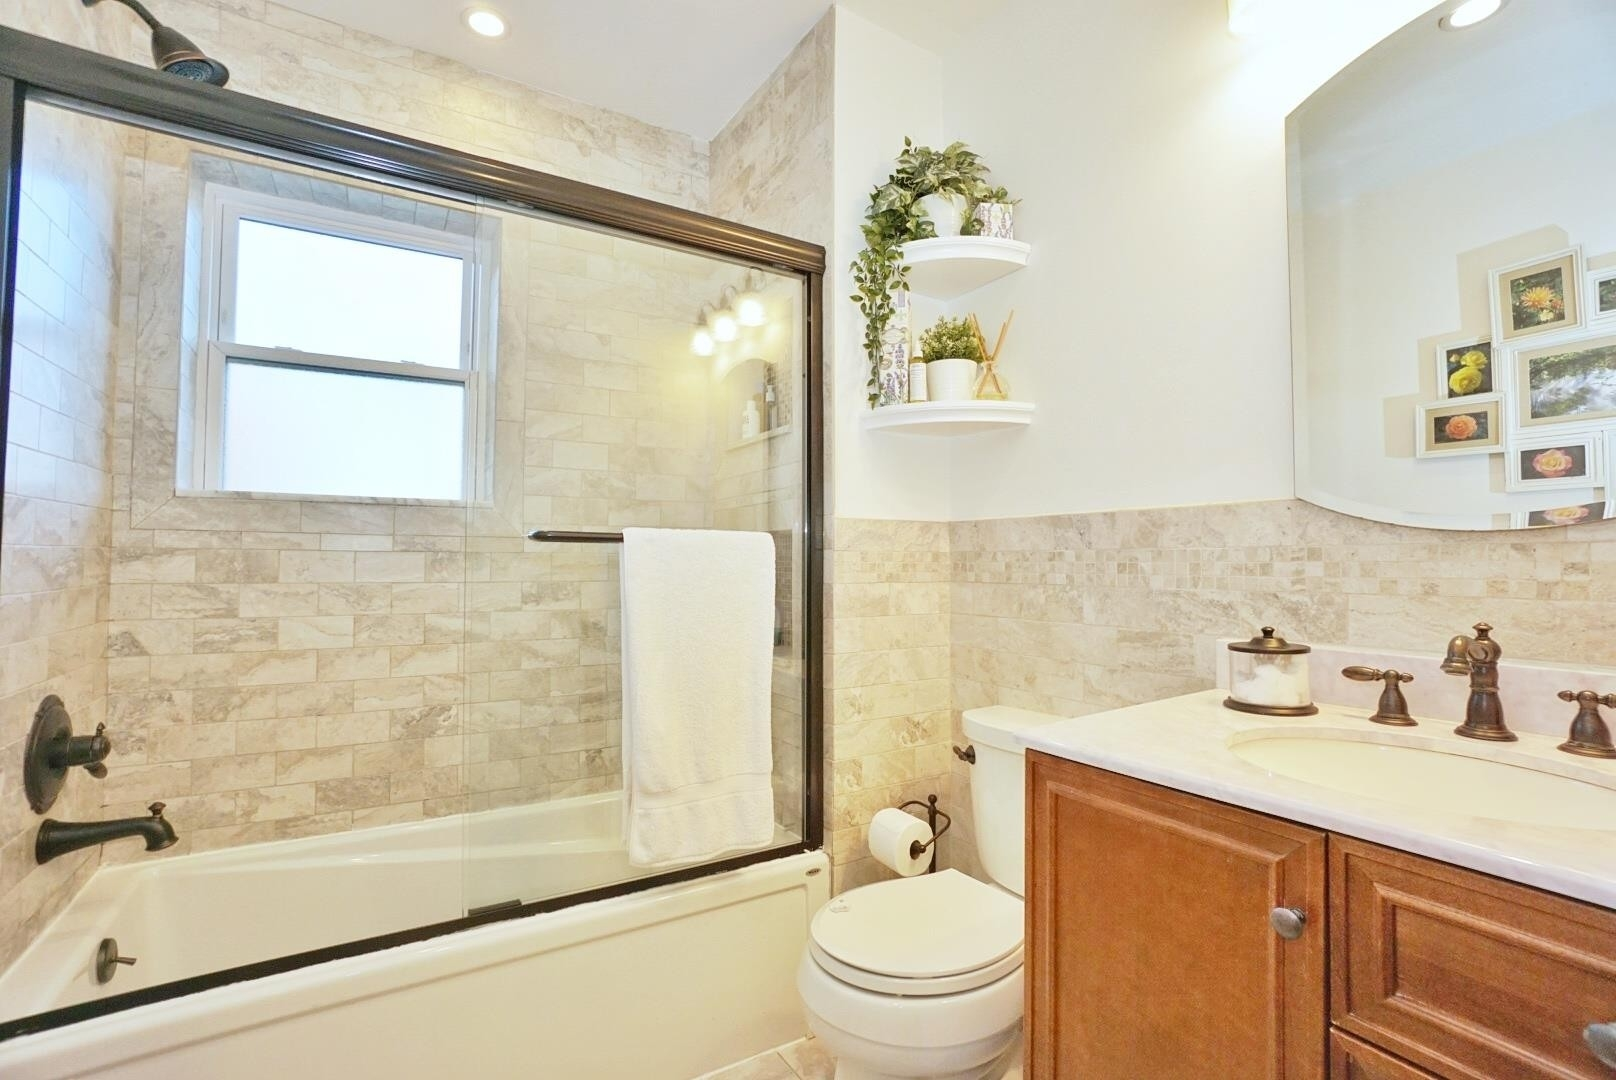 12. Single Family Townhouse for Sale at 1684 RYDER ST , TOWNHOUSE Marine Park, Brooklyn, NY 11234